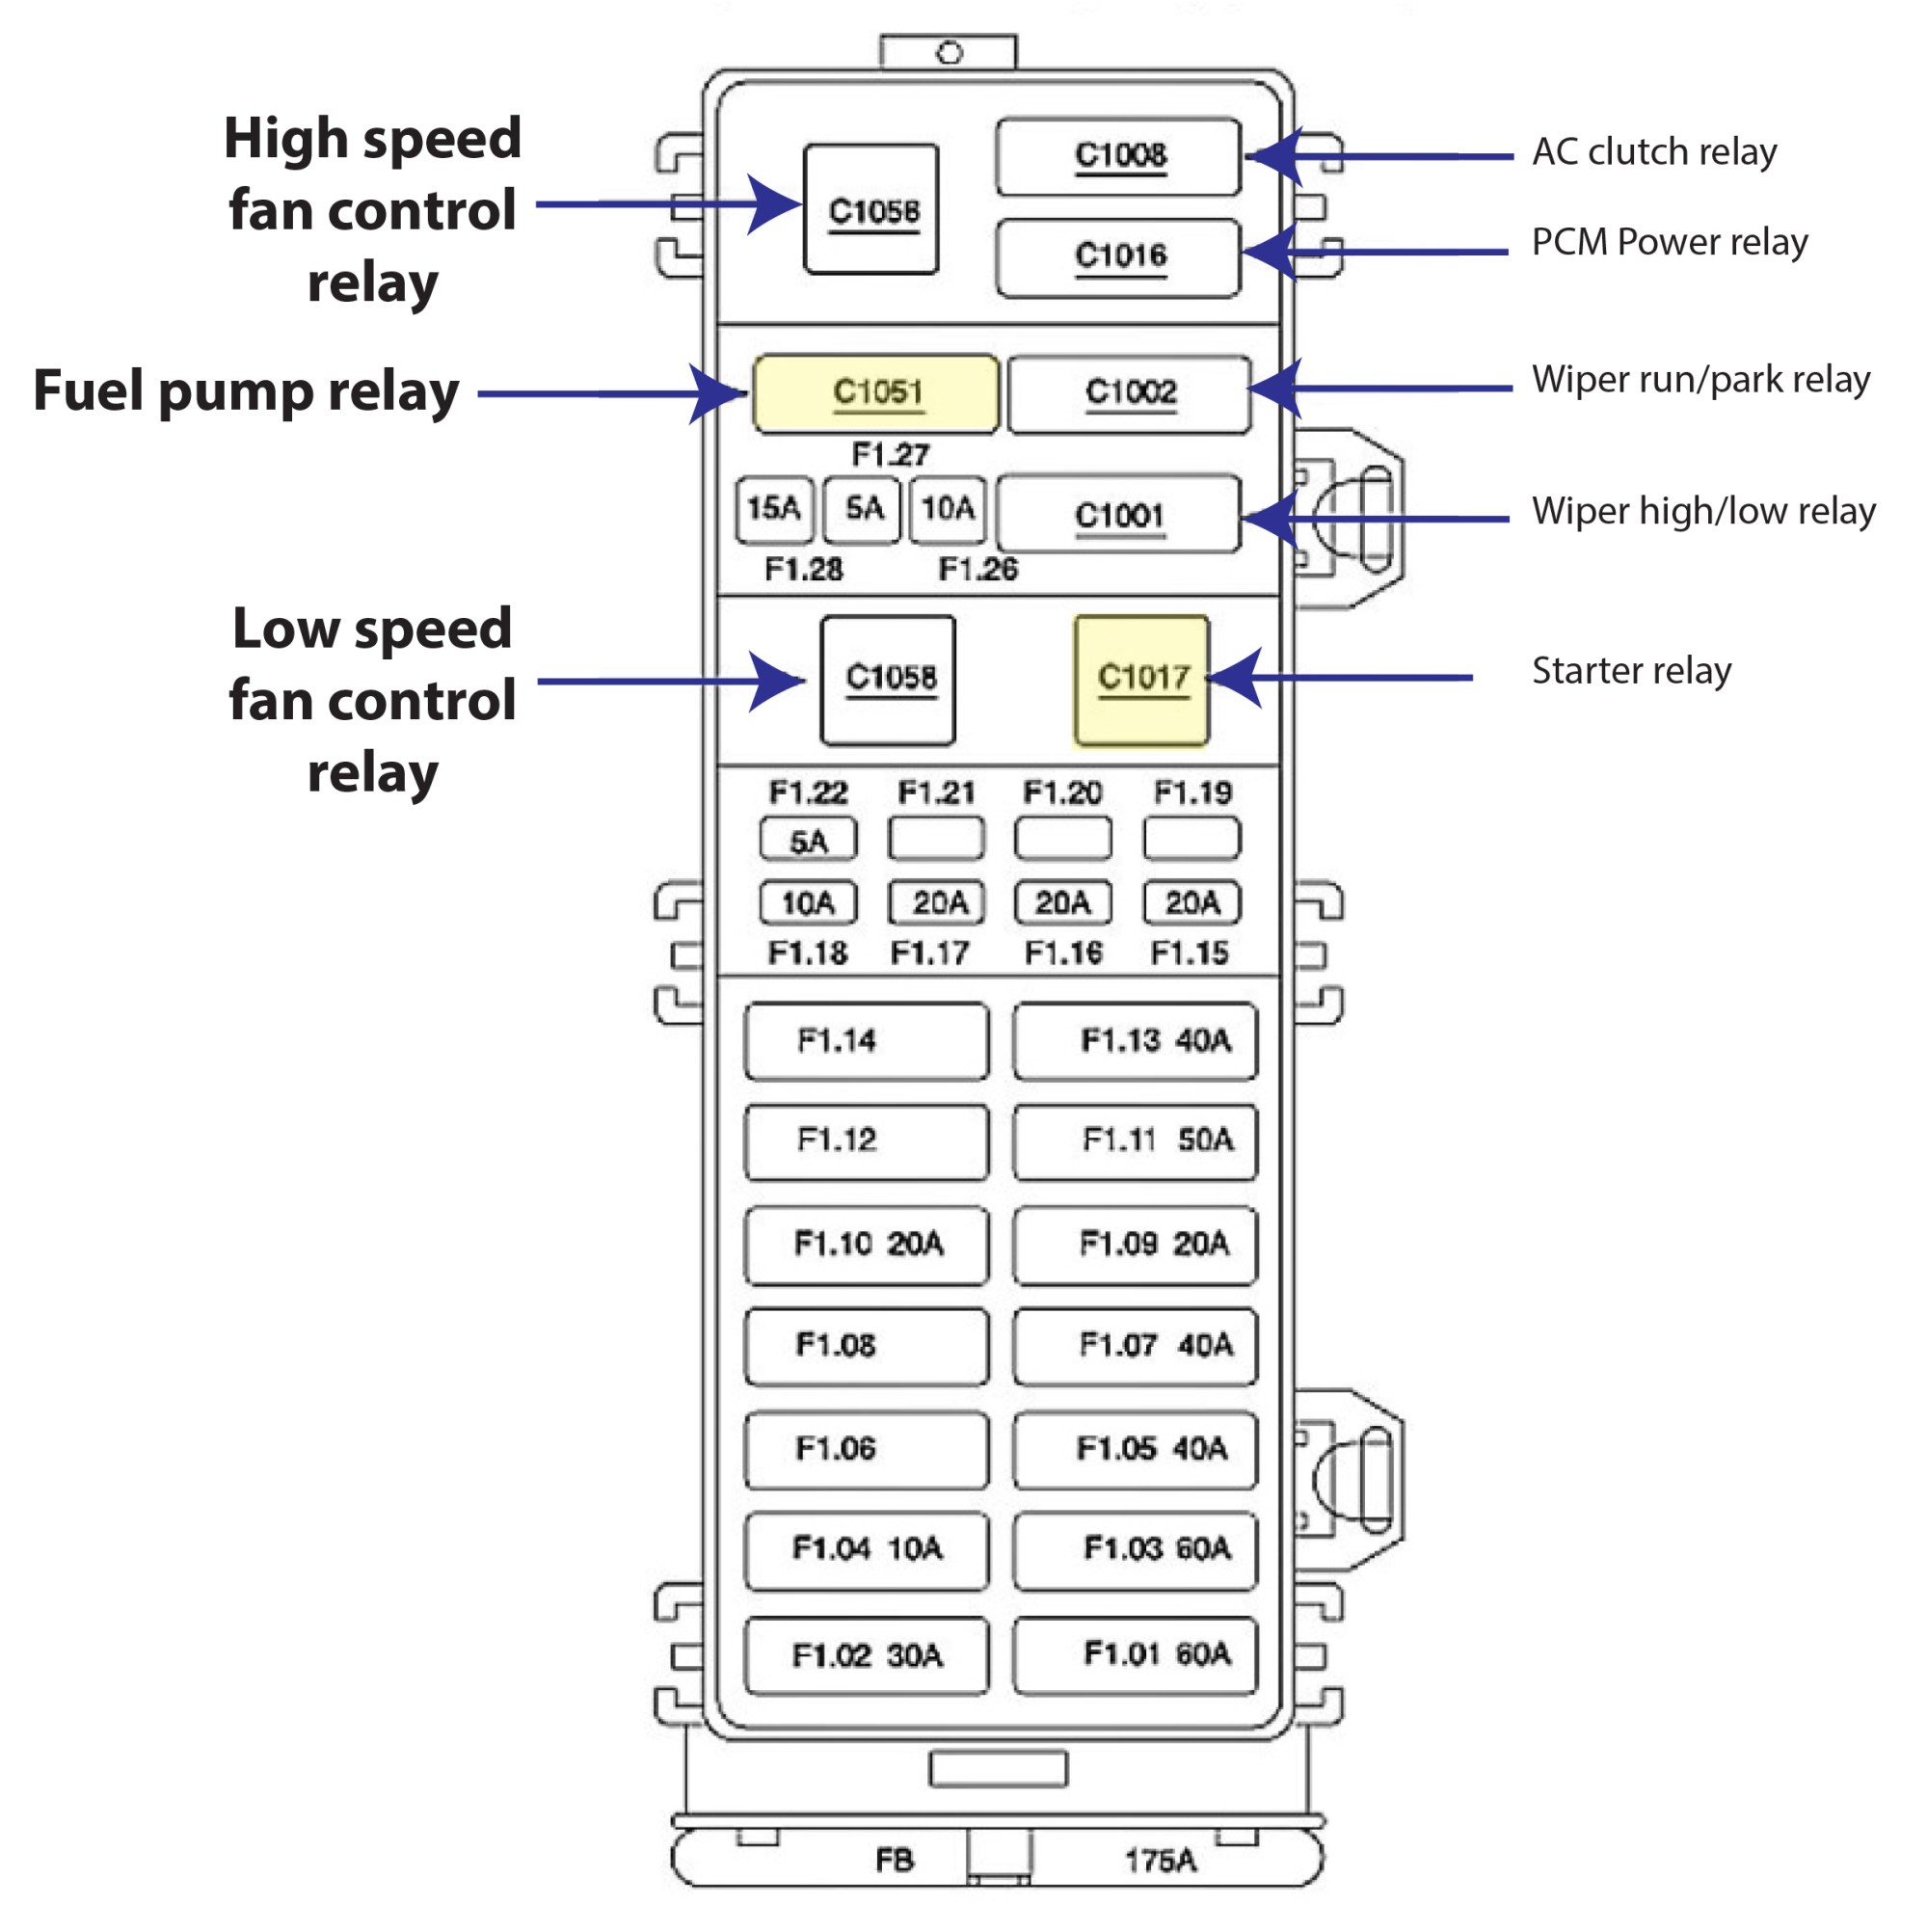 hight resolution of ford fuse box repair wiring diagram name ford fuse box replacement f100 fuse box replacement